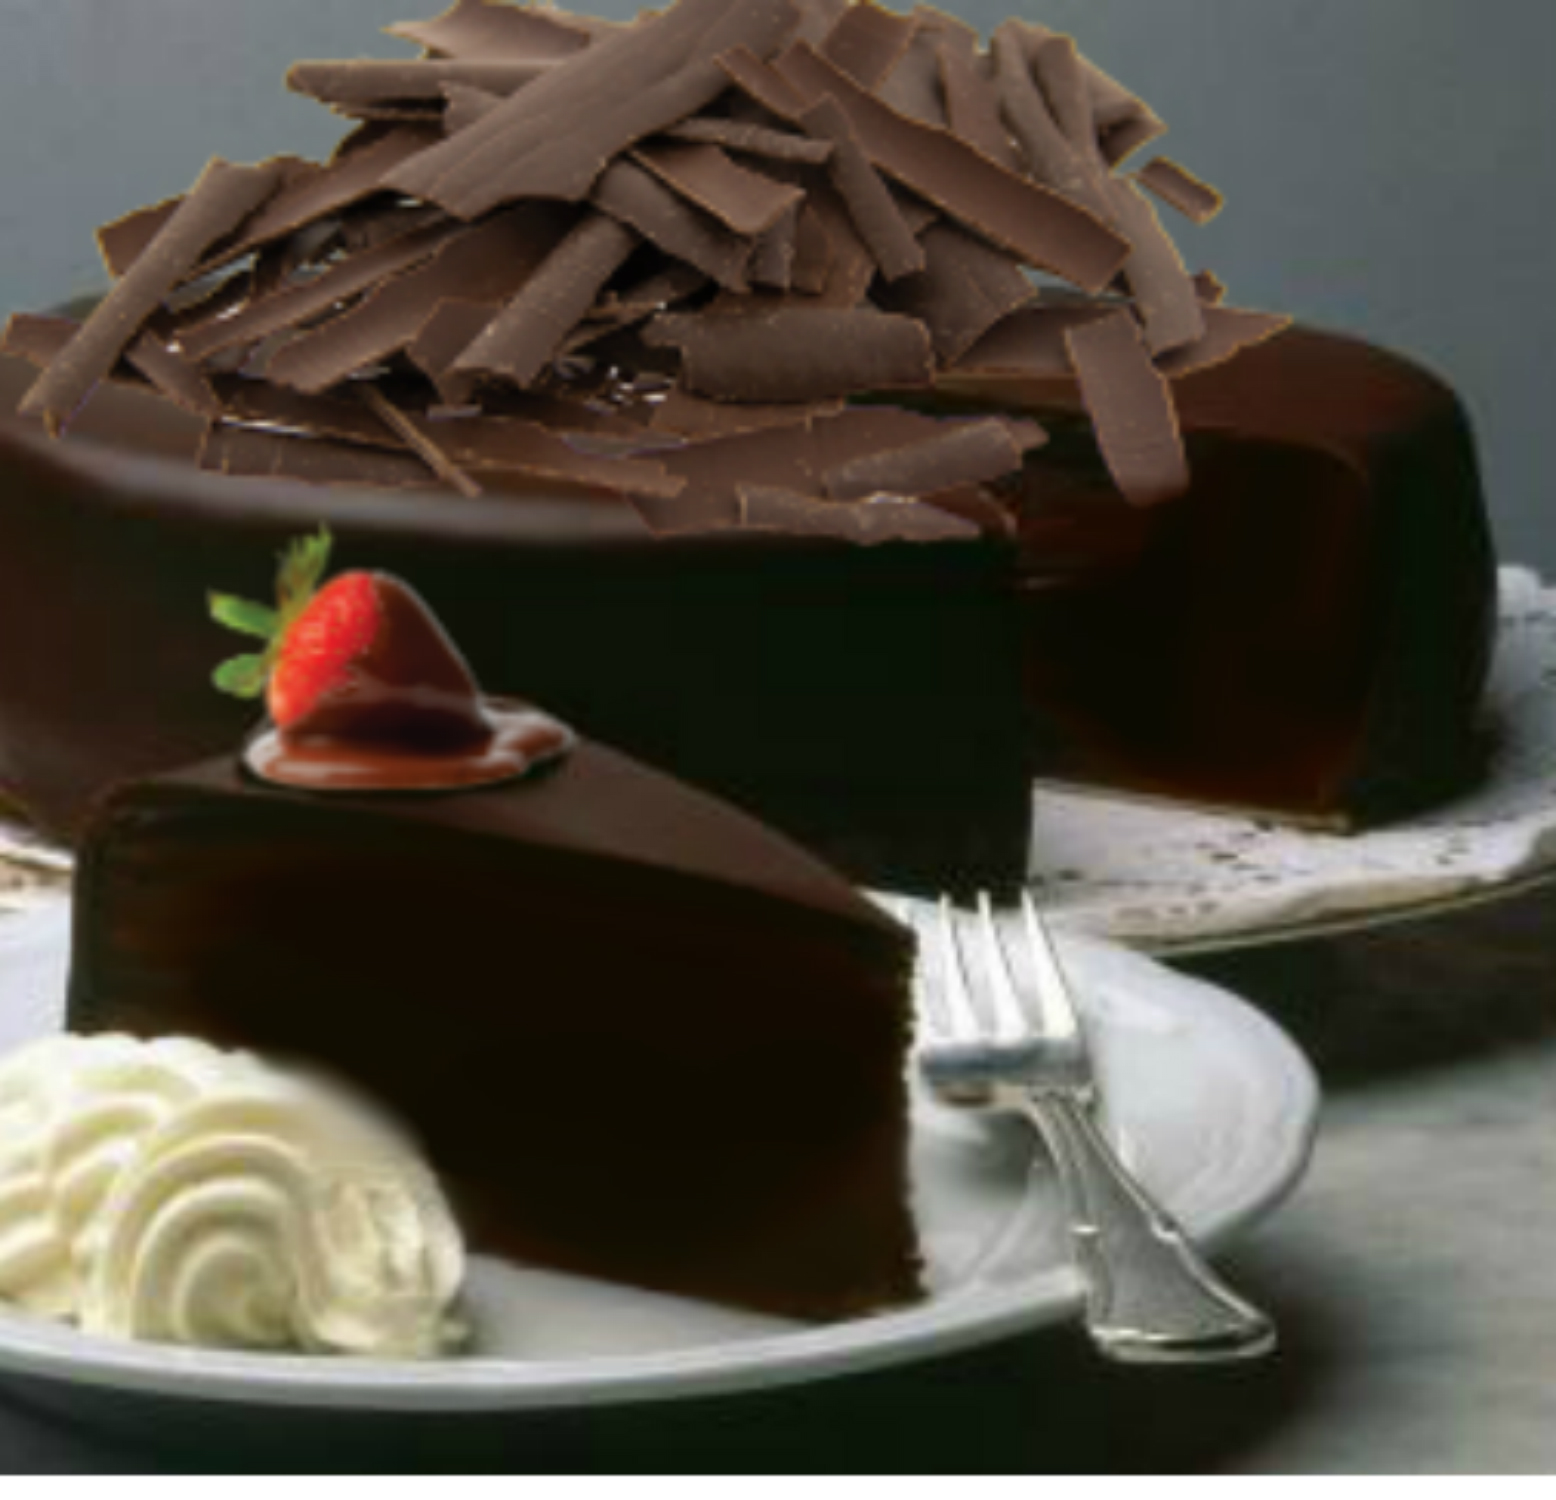 The Dark Chocolate Bakery Free Cake Delivery in Frisco TX The